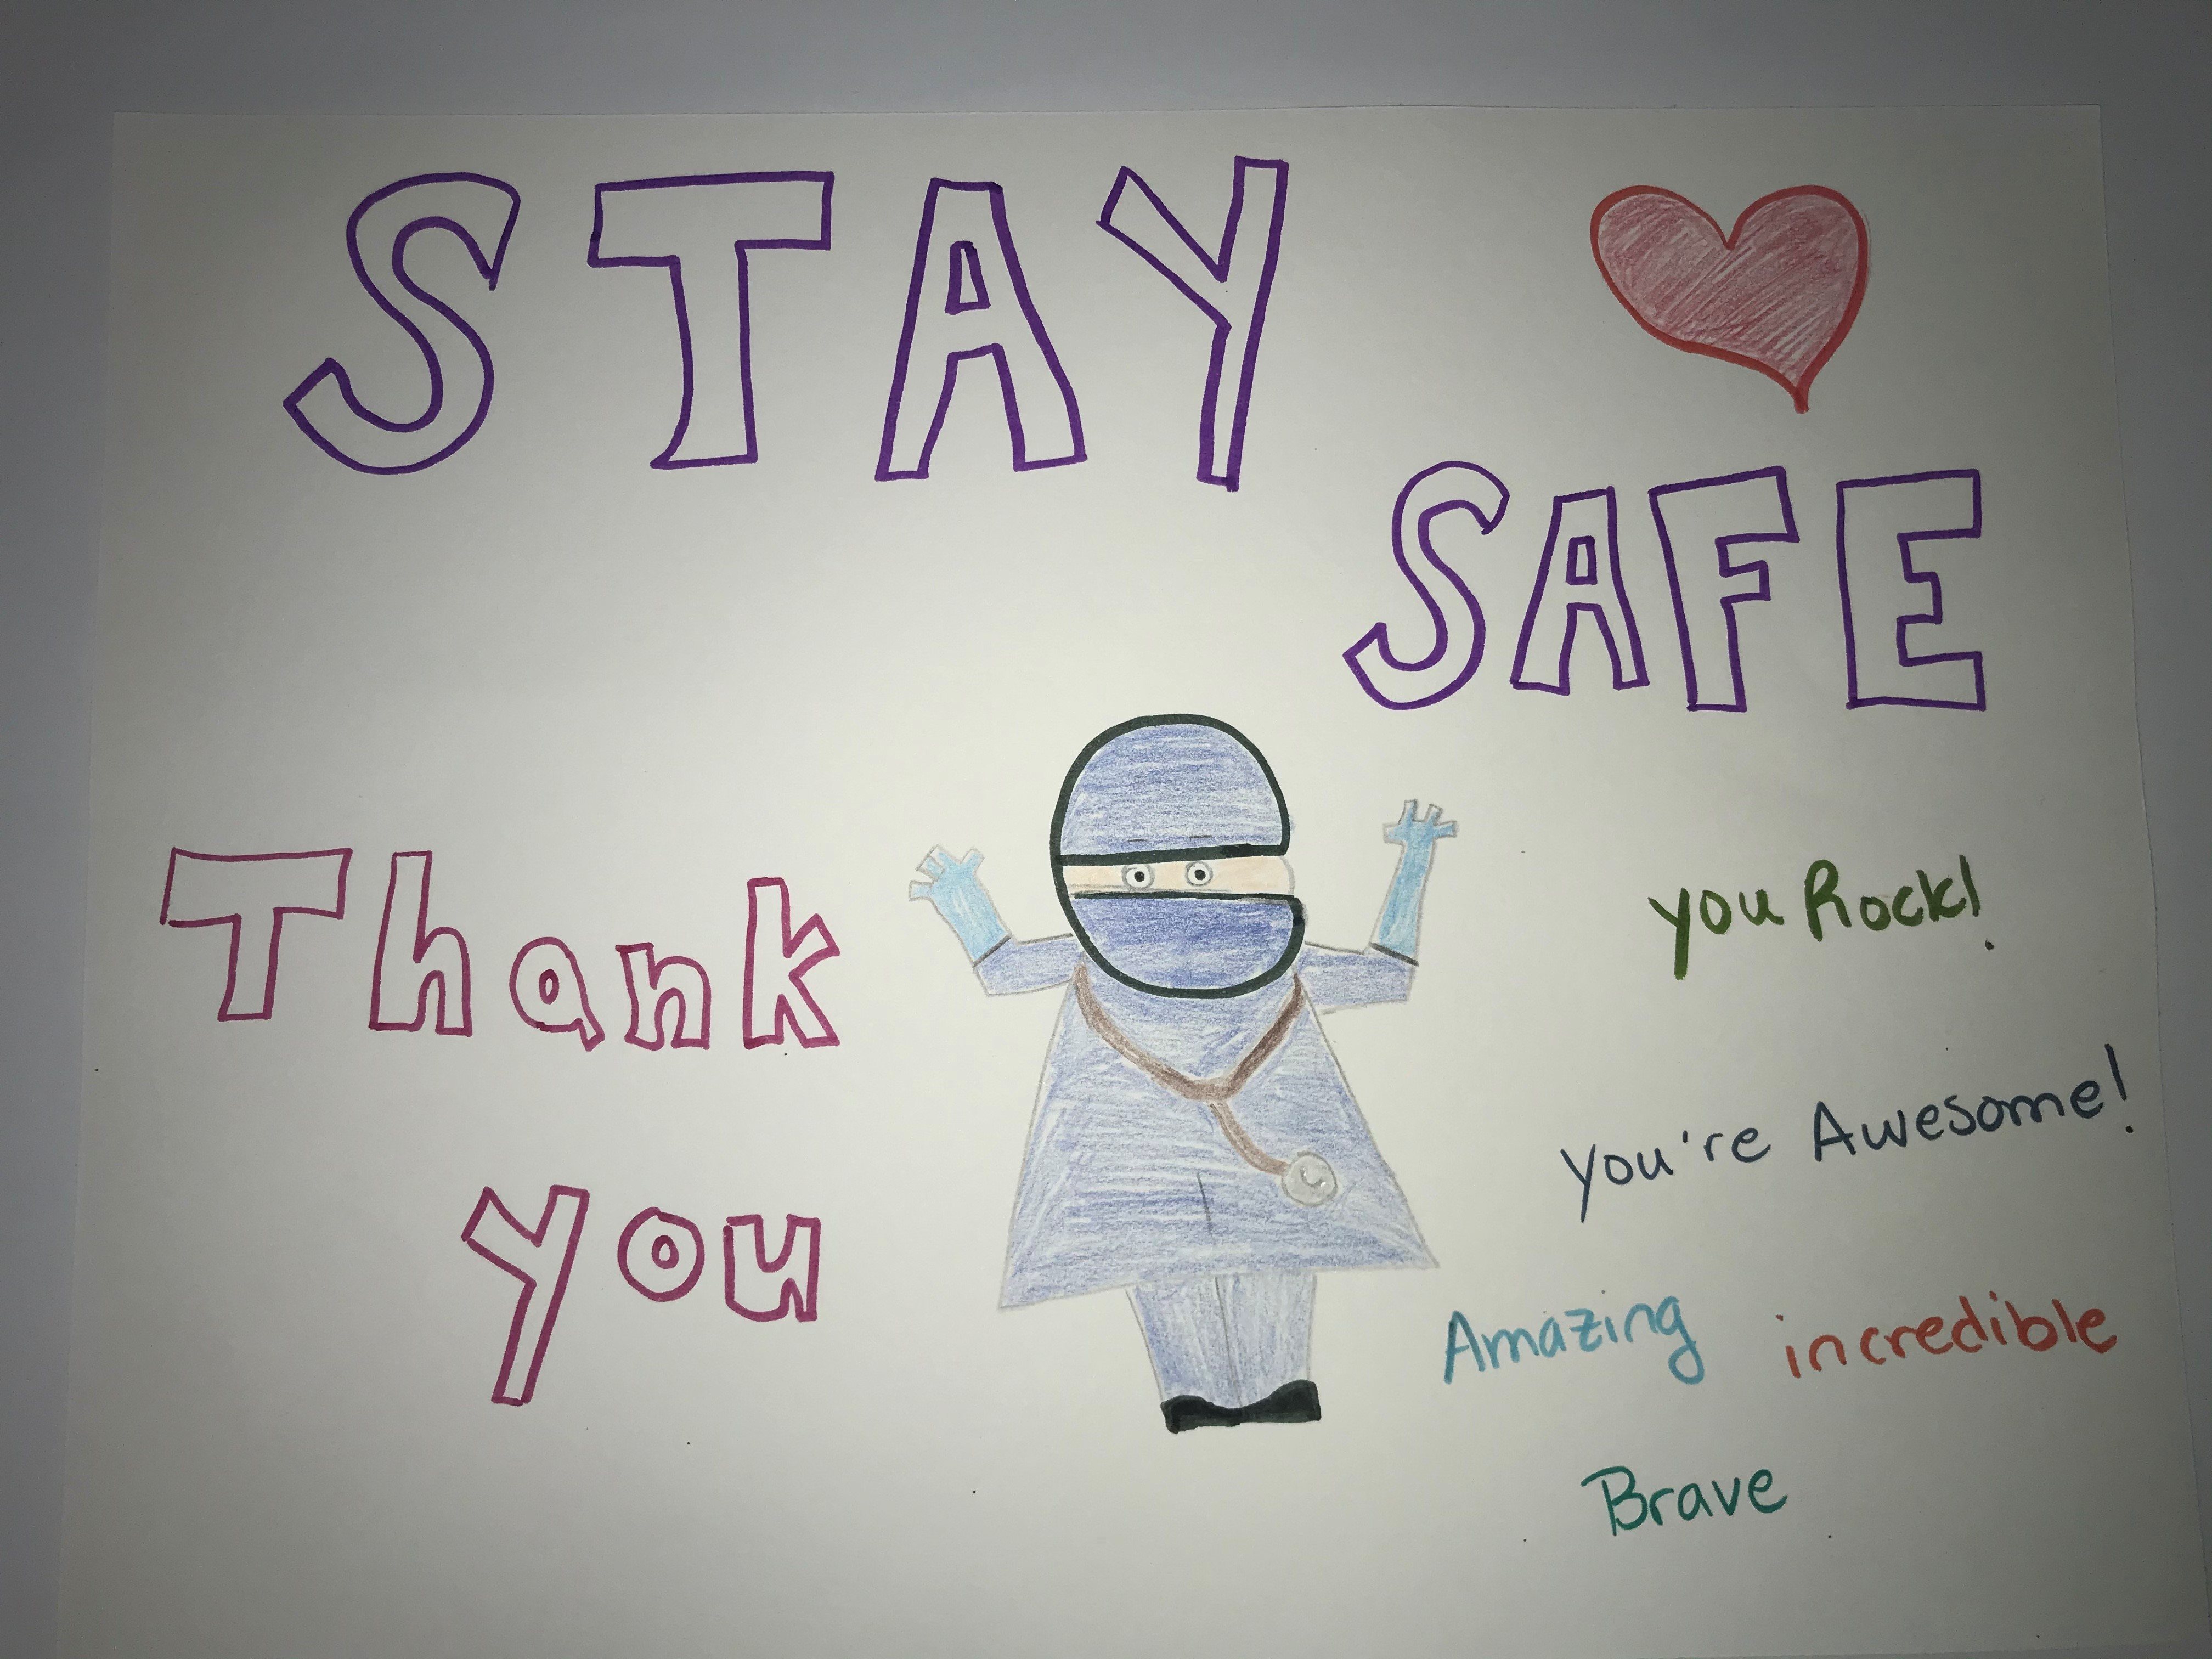 Stay safe! Thank you.